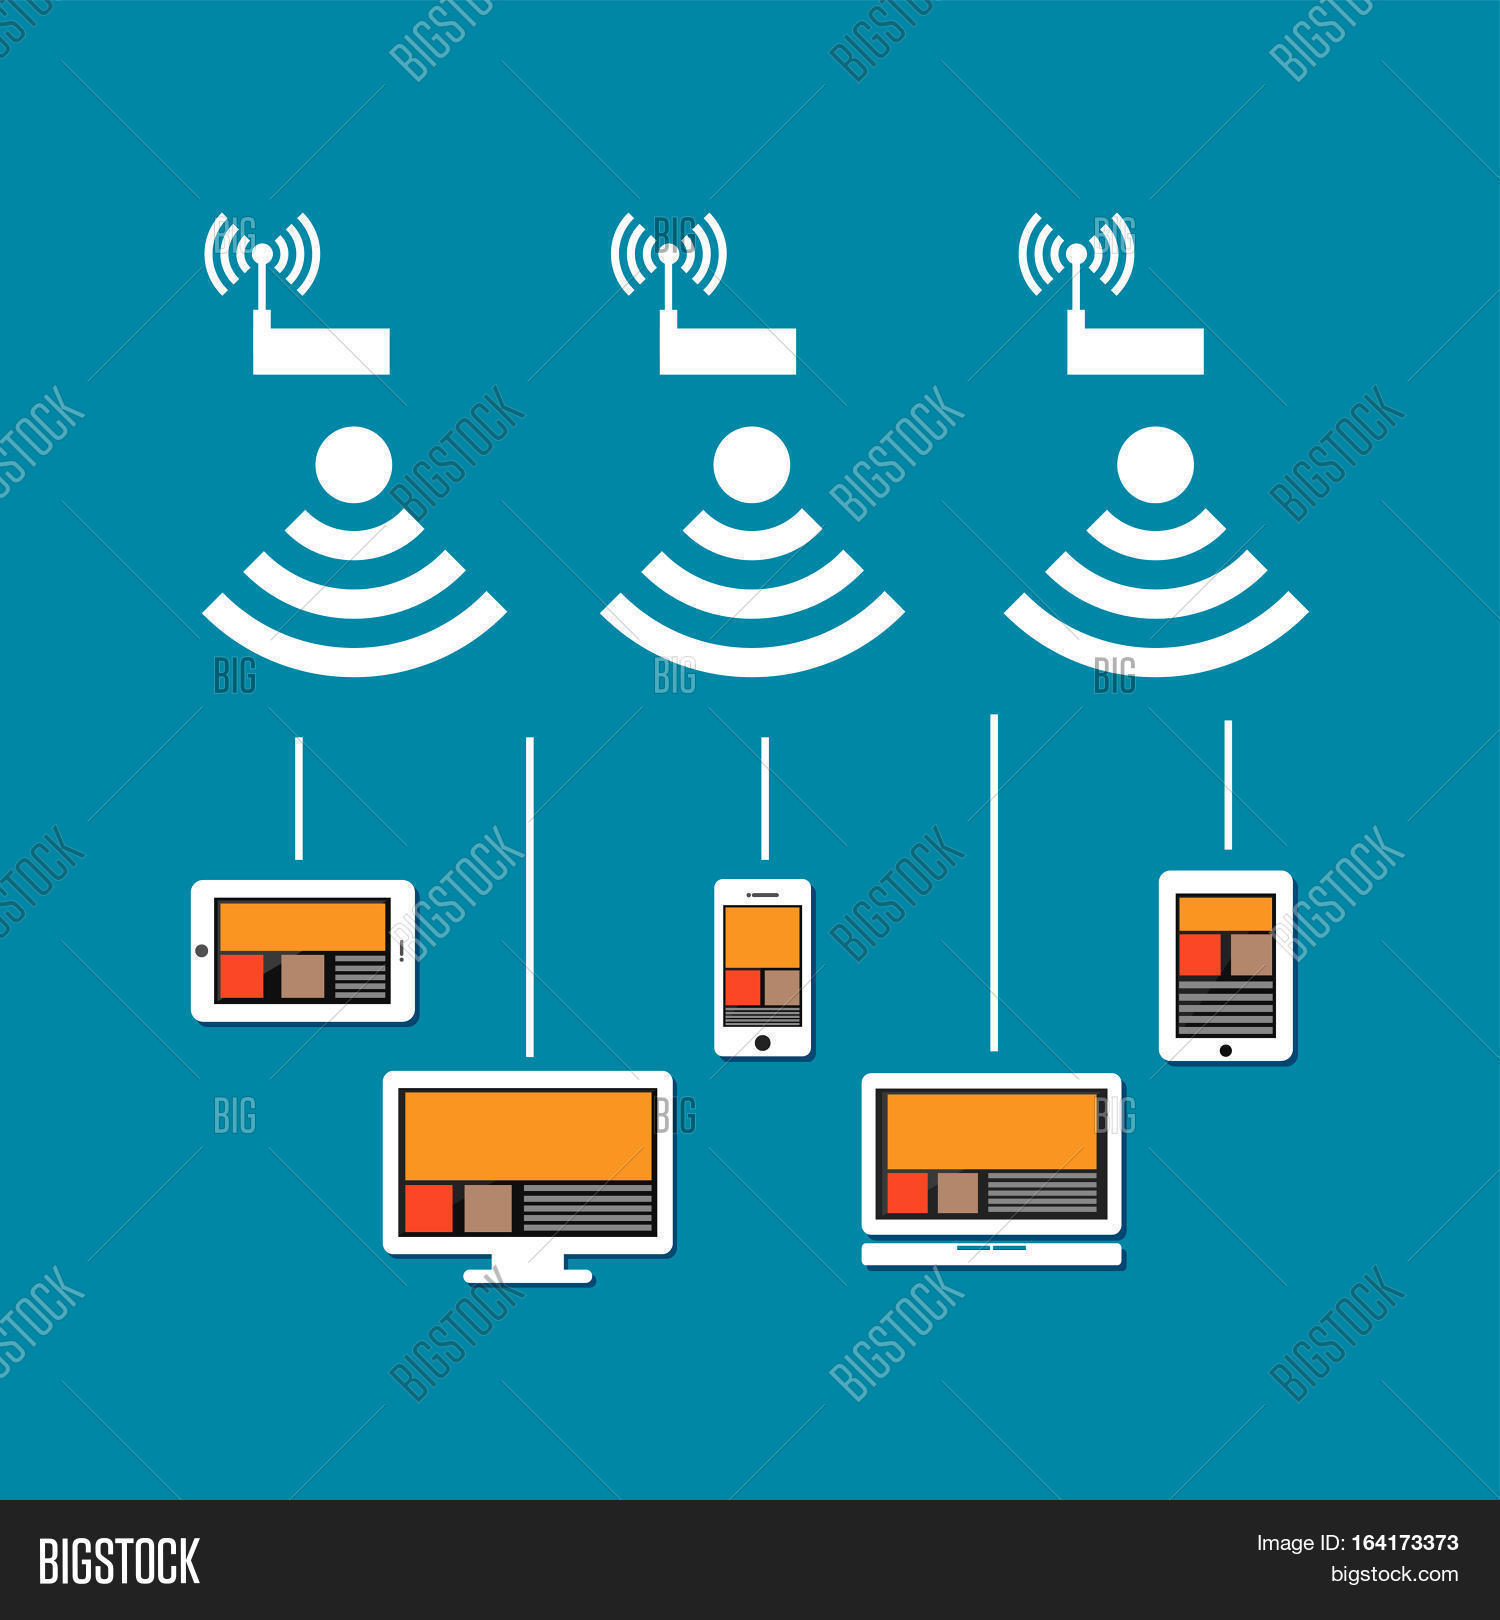 Wireless Network Vector Photo Free Trial Bigstock Connection Diagram Concept Communication On Devices Connect To Cloud Internet Using